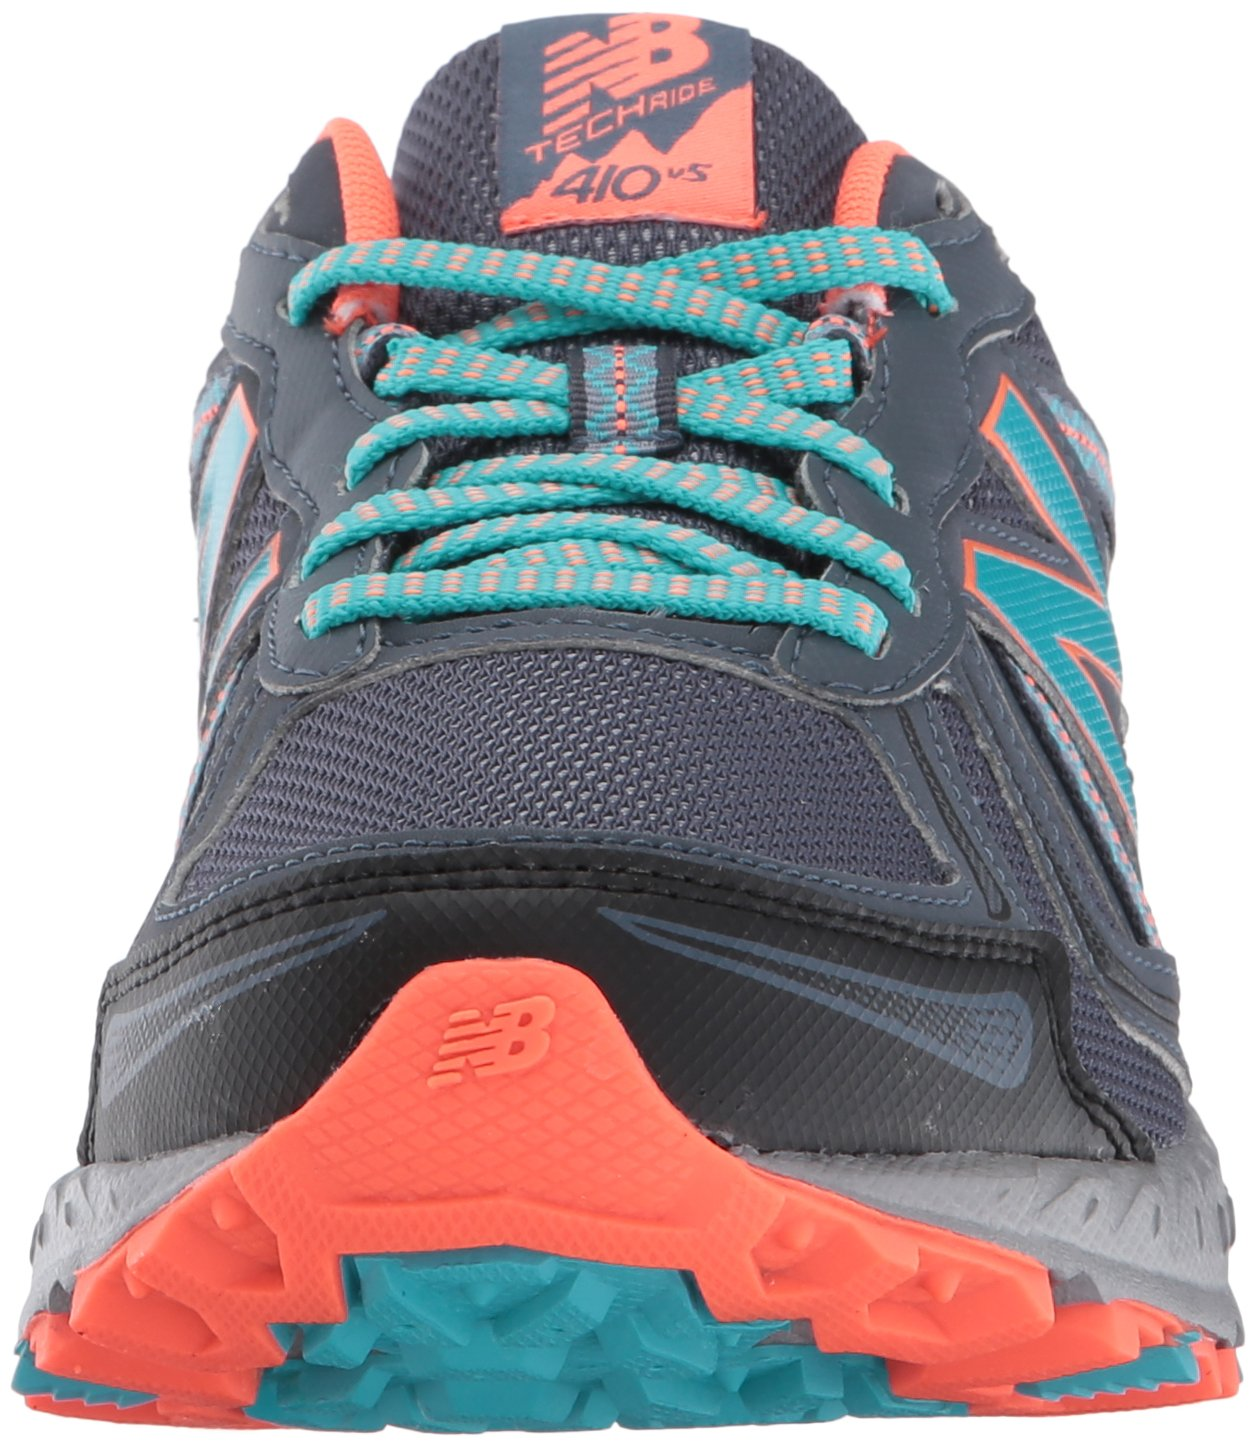 New Balance Women's WT410v5 Cushioning 9.5 Trail Running Shoe B01LYR6FTP 9.5 Cushioning D US|Dark Grey e51f50